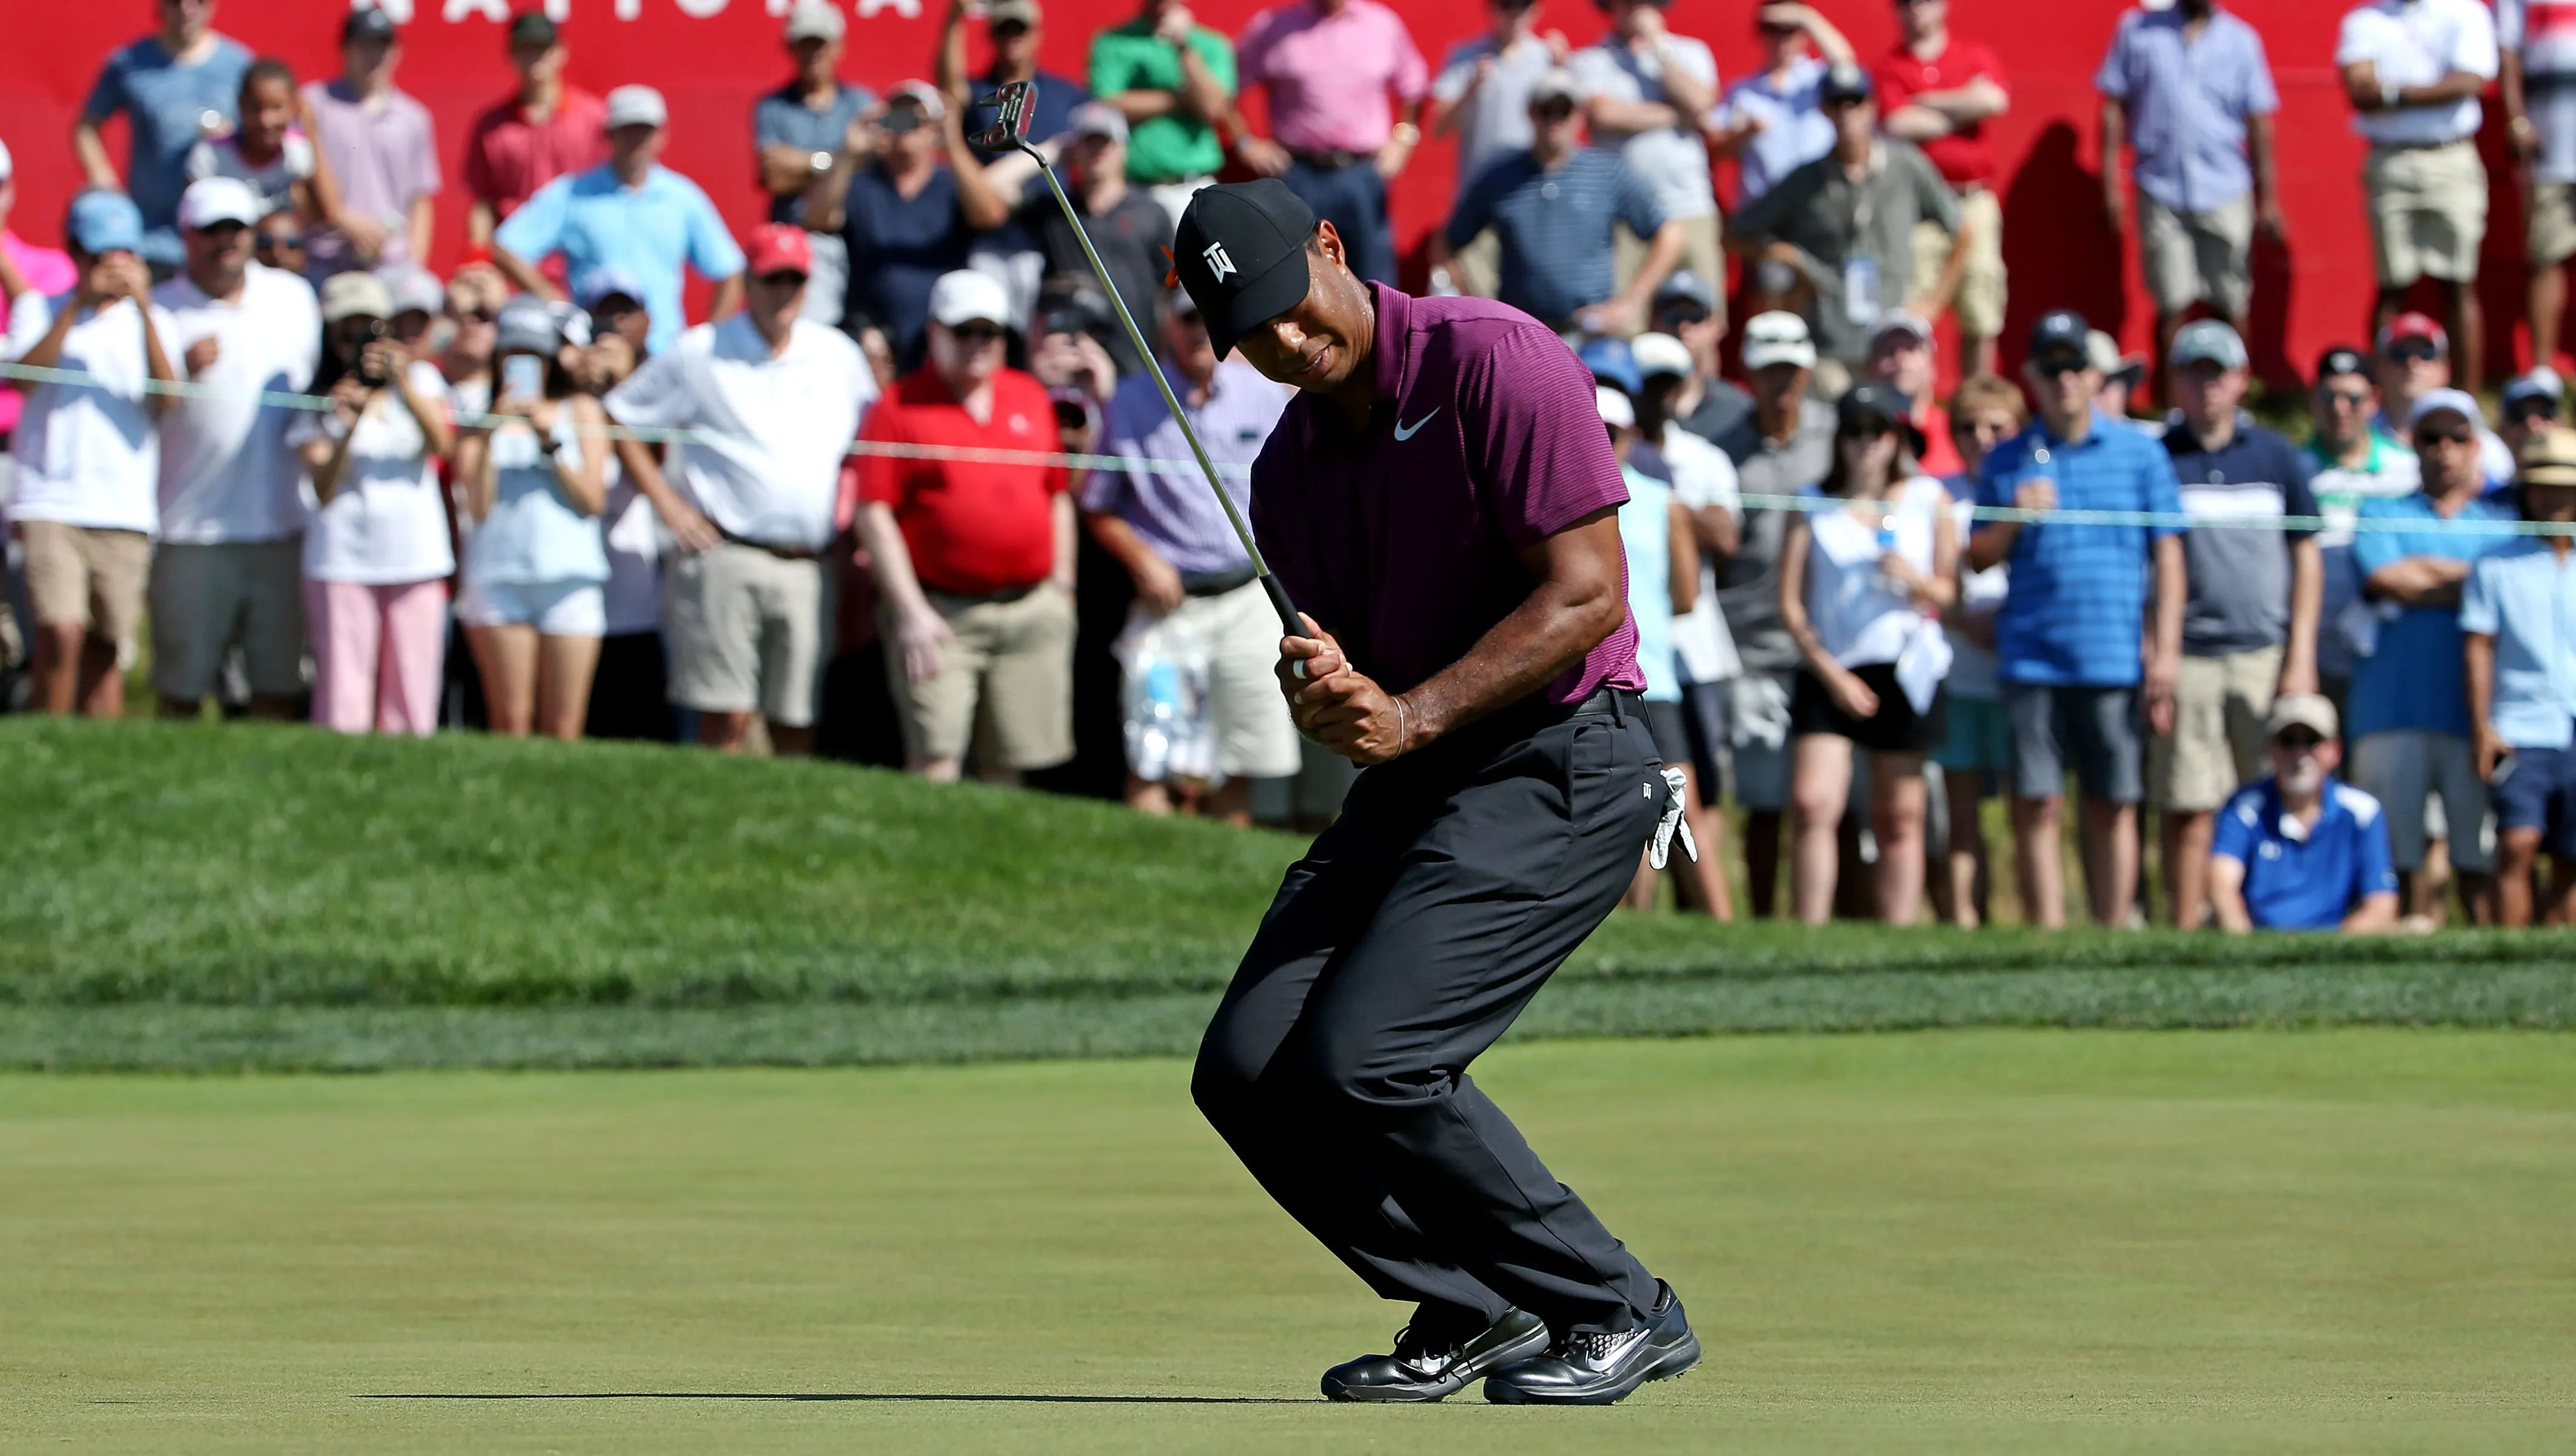 Tiger Woods putting together solid round at Quicken Loans National